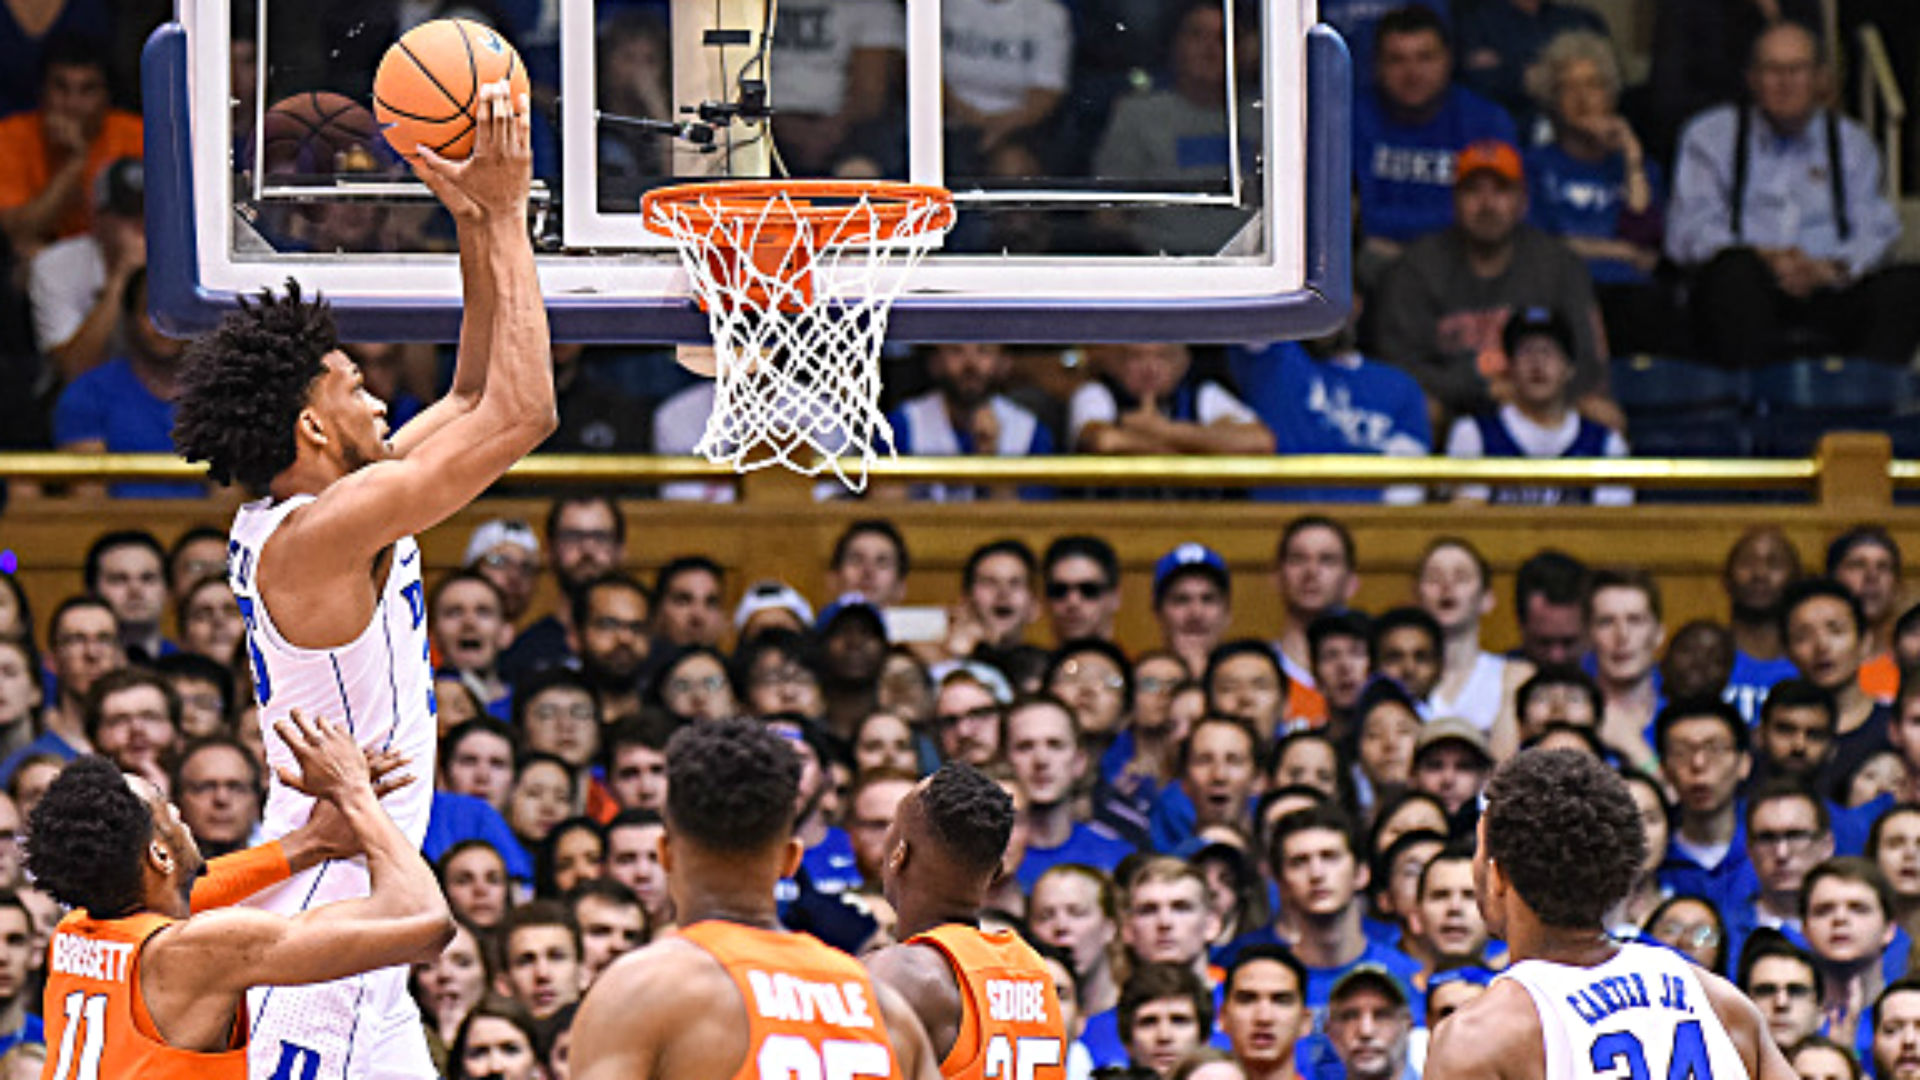 March Madness 2018: Three Takeaways From Duke's Sweet 16